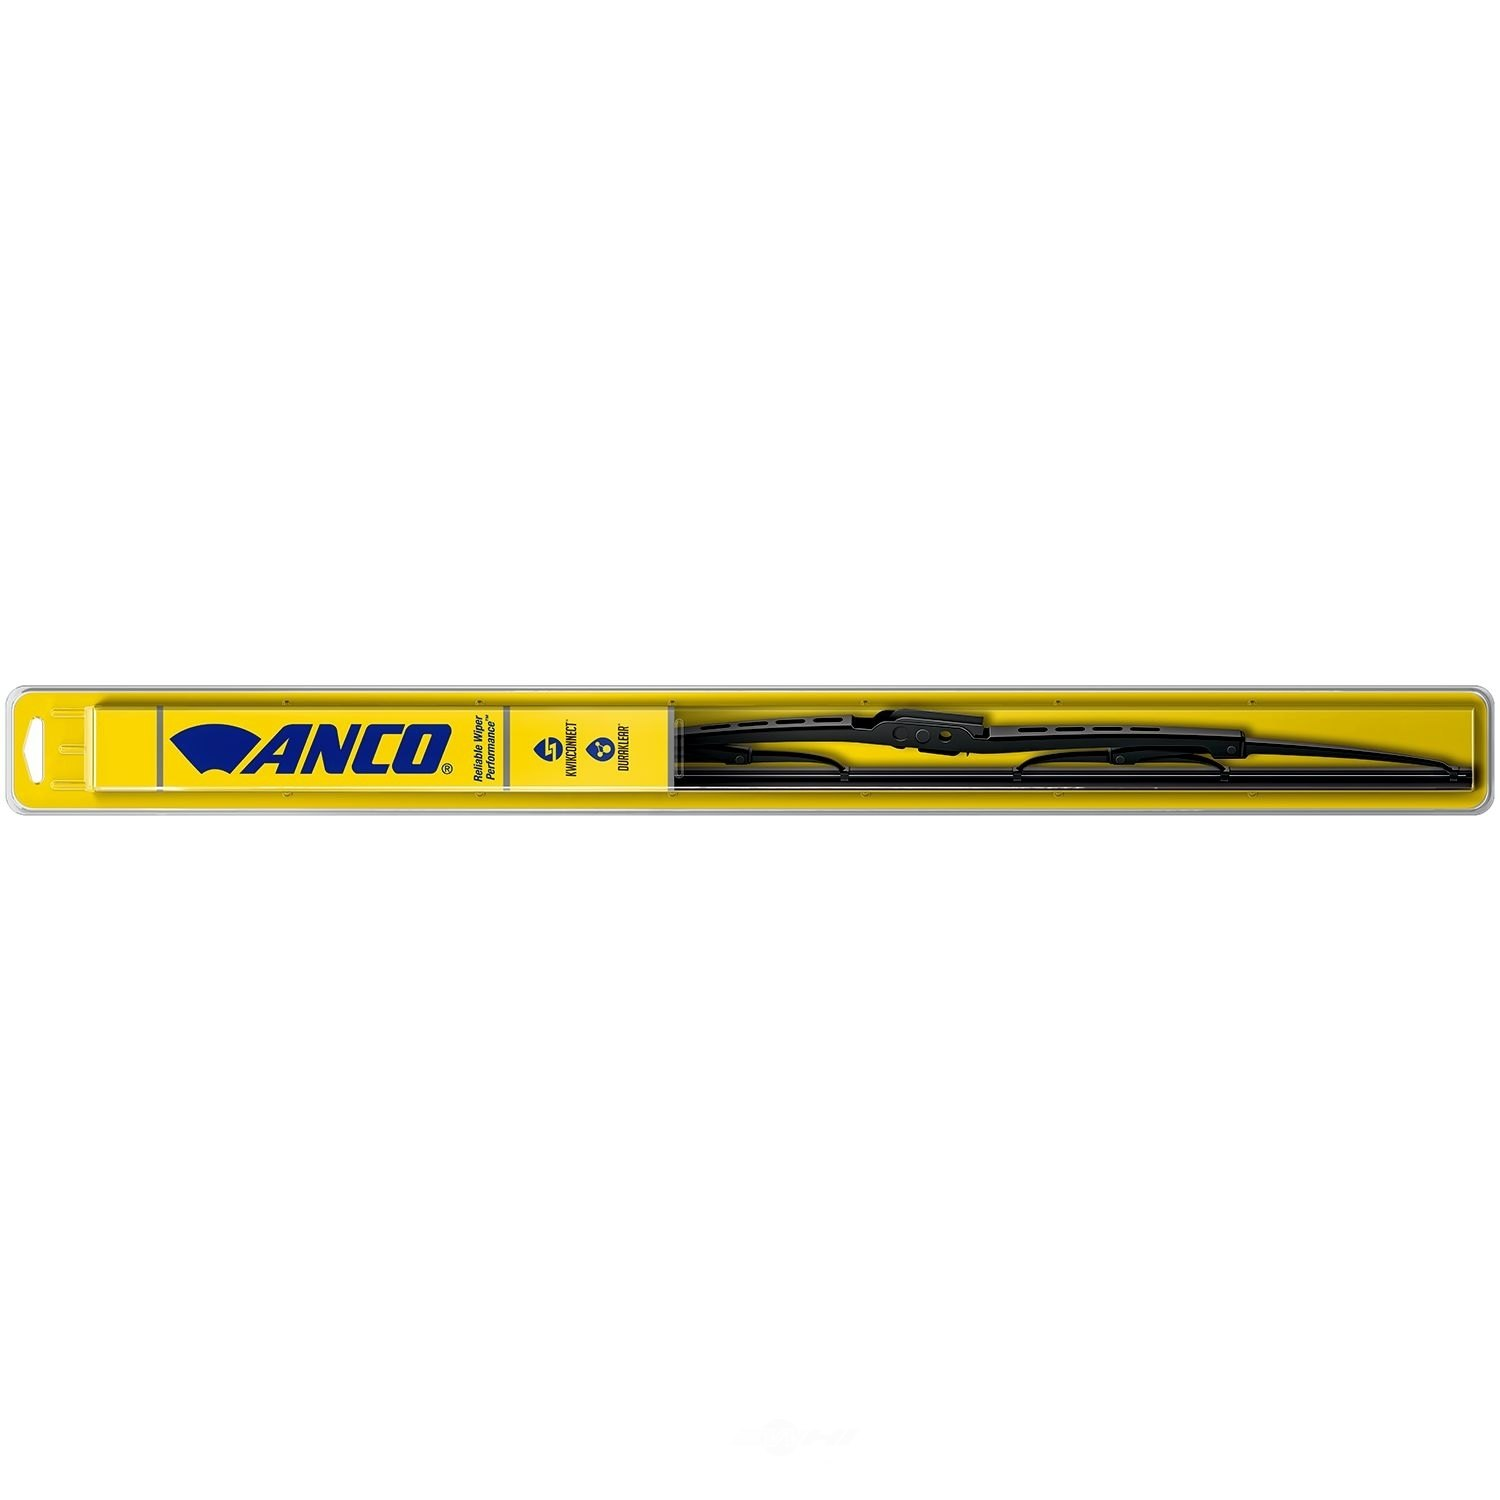 ANCO WIPER PRODUCTS - 31-series Wiper Blade - ANC 31-20